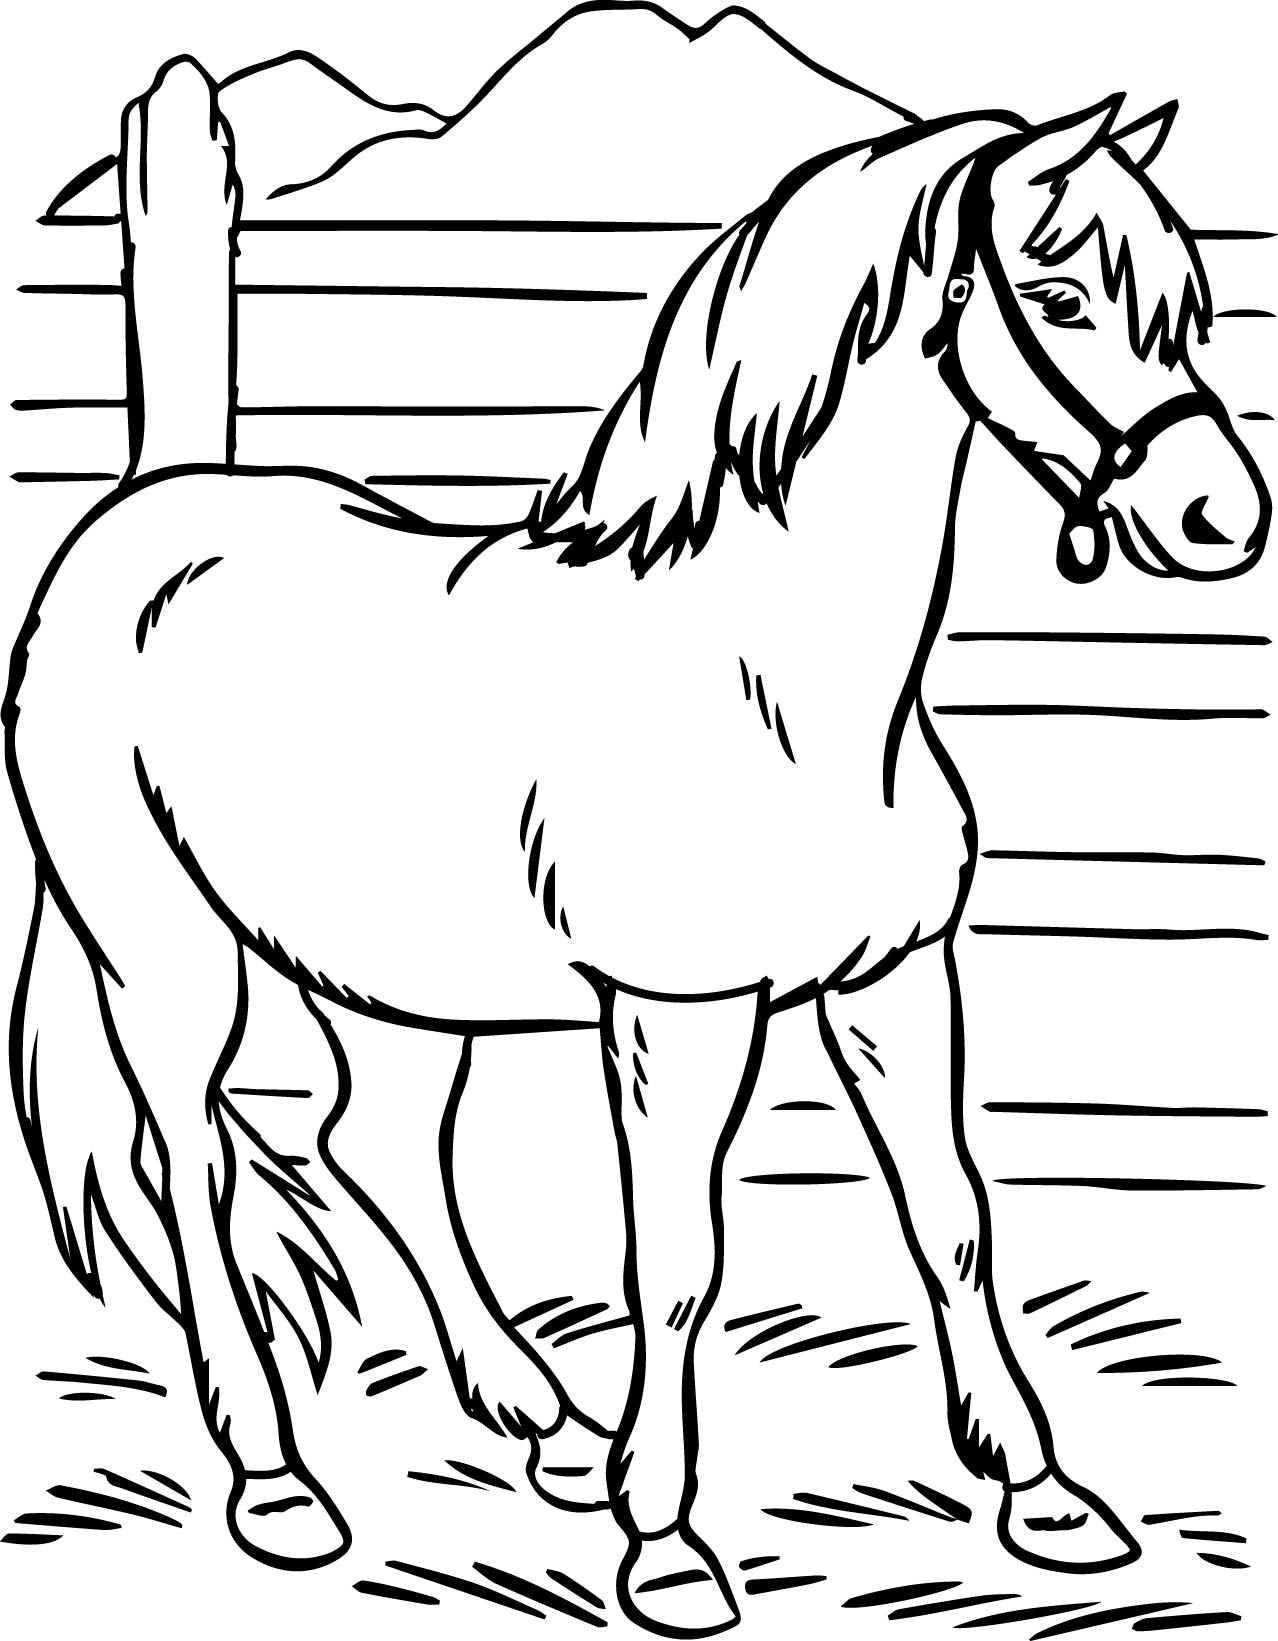 Horse Printable Coloring Pages For Preschool